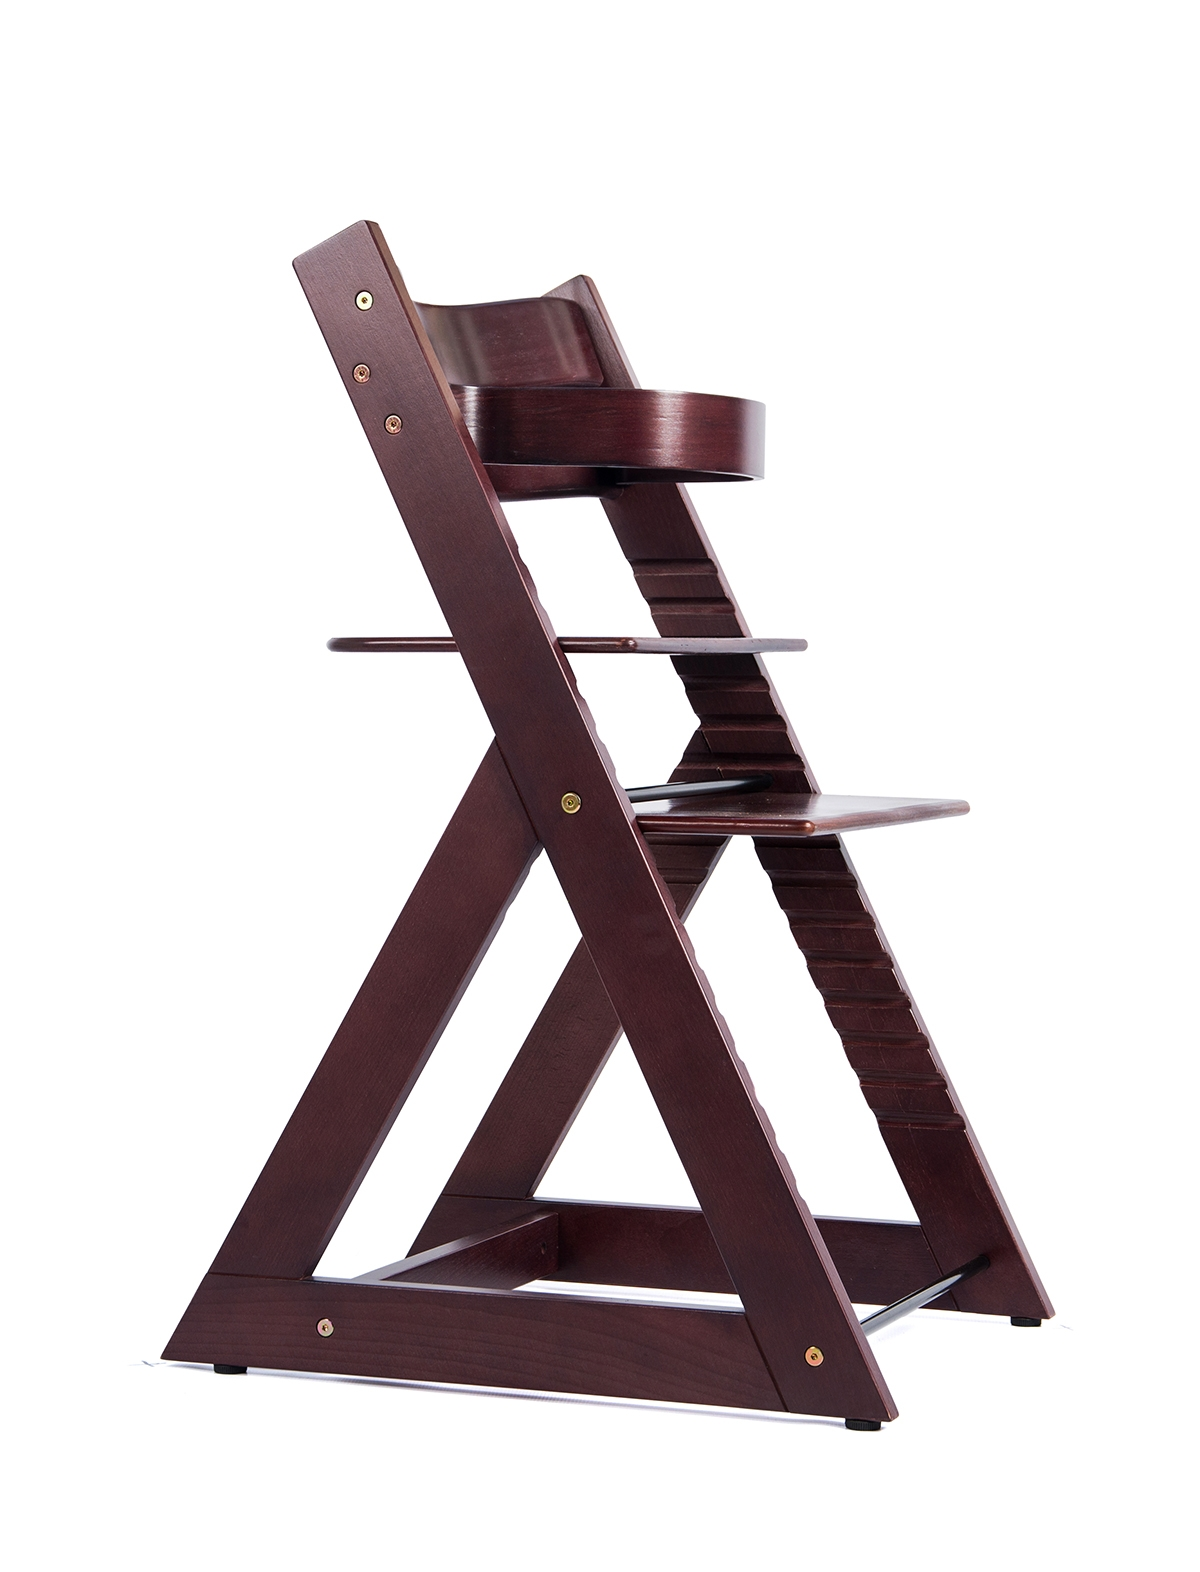 Toddler Chair - Mahogany Stain